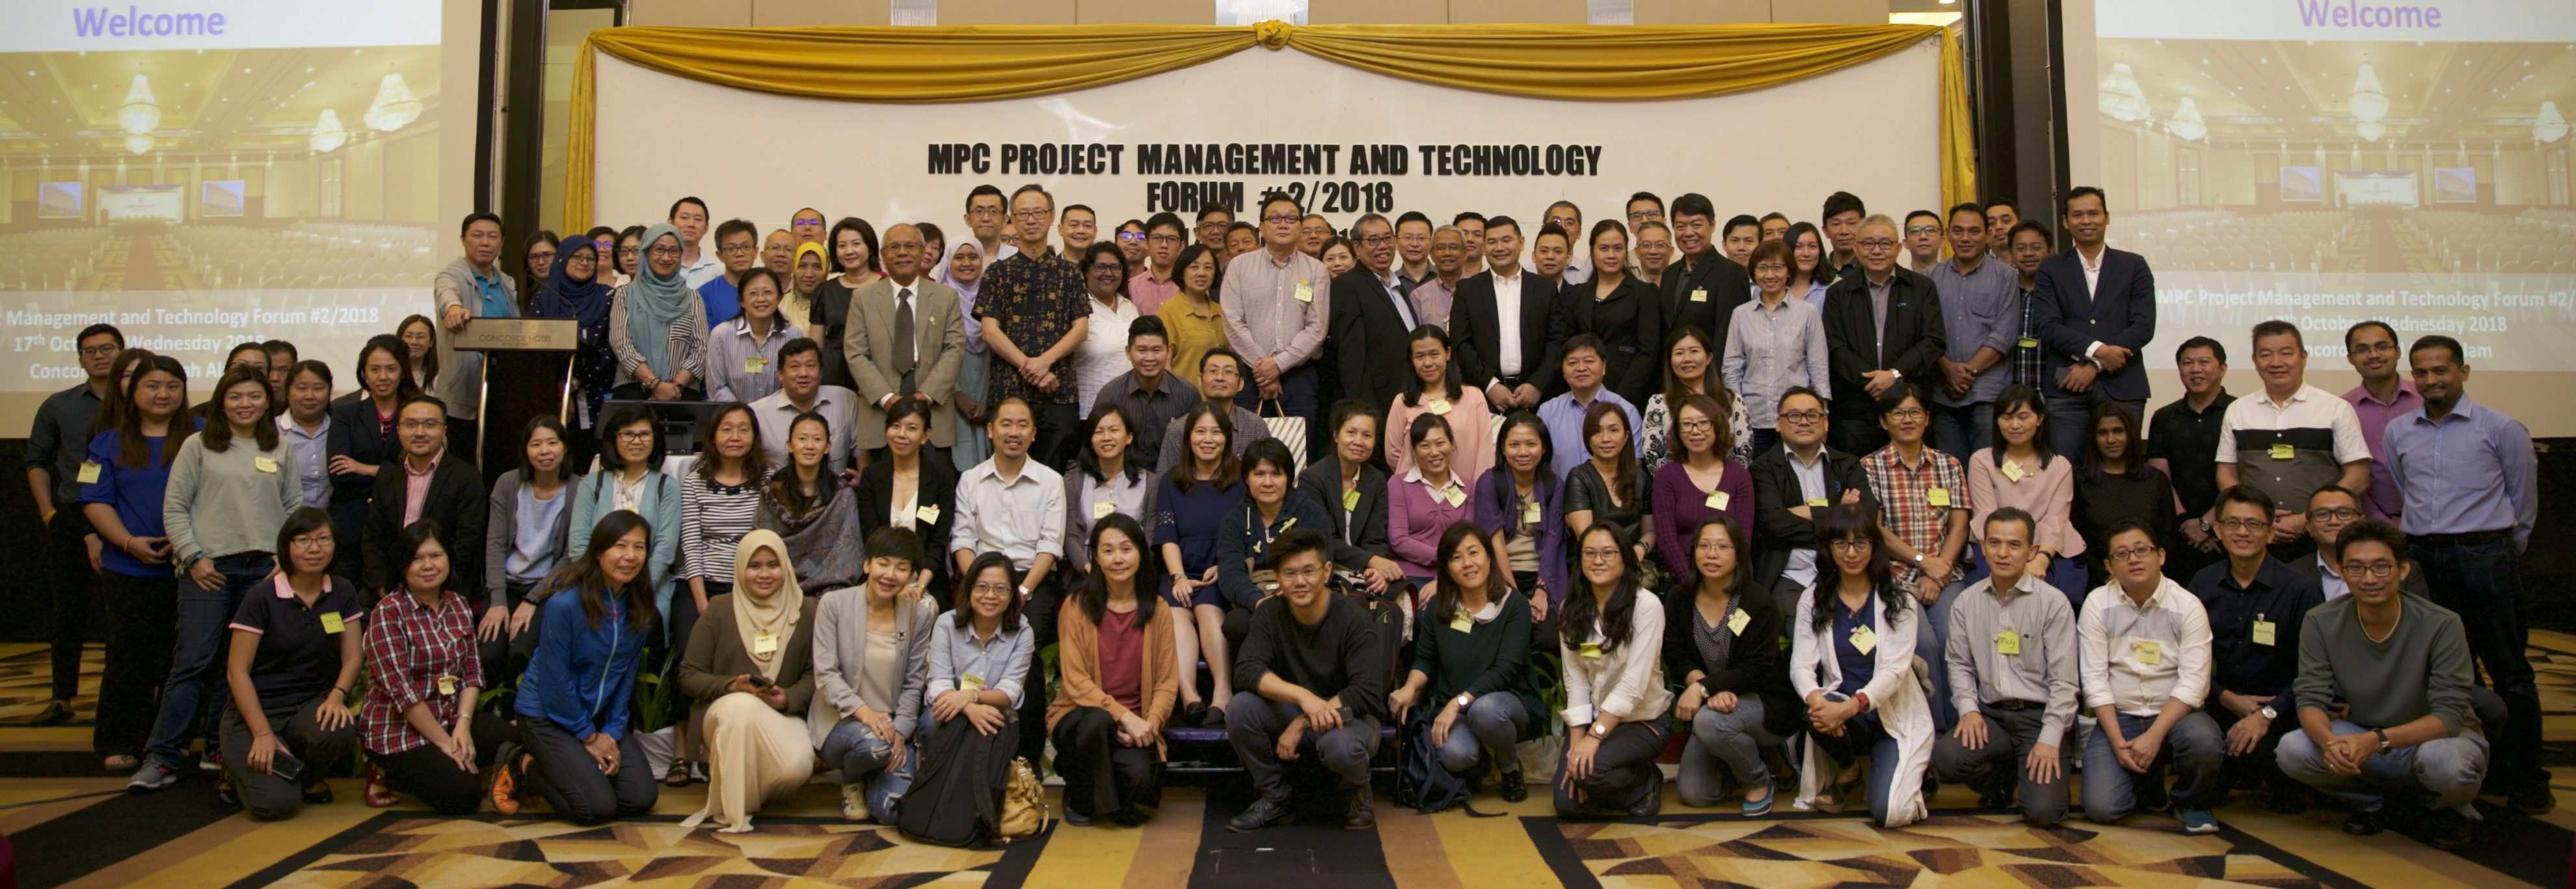 MPC Project Management & Technology Forum #2/2018